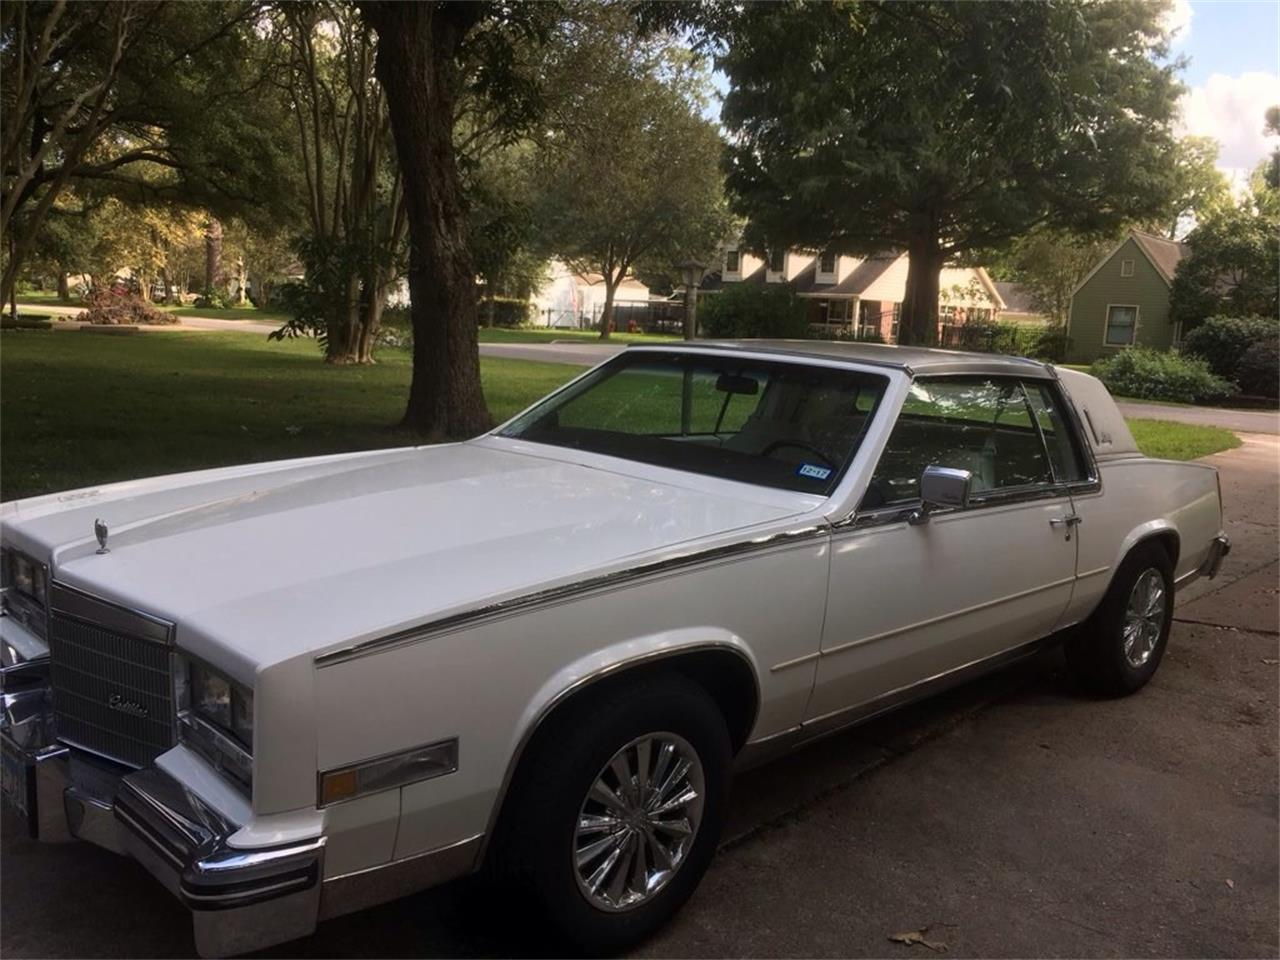 1985 Cadillac Eldorado Biarritz for sale in Houston, TX